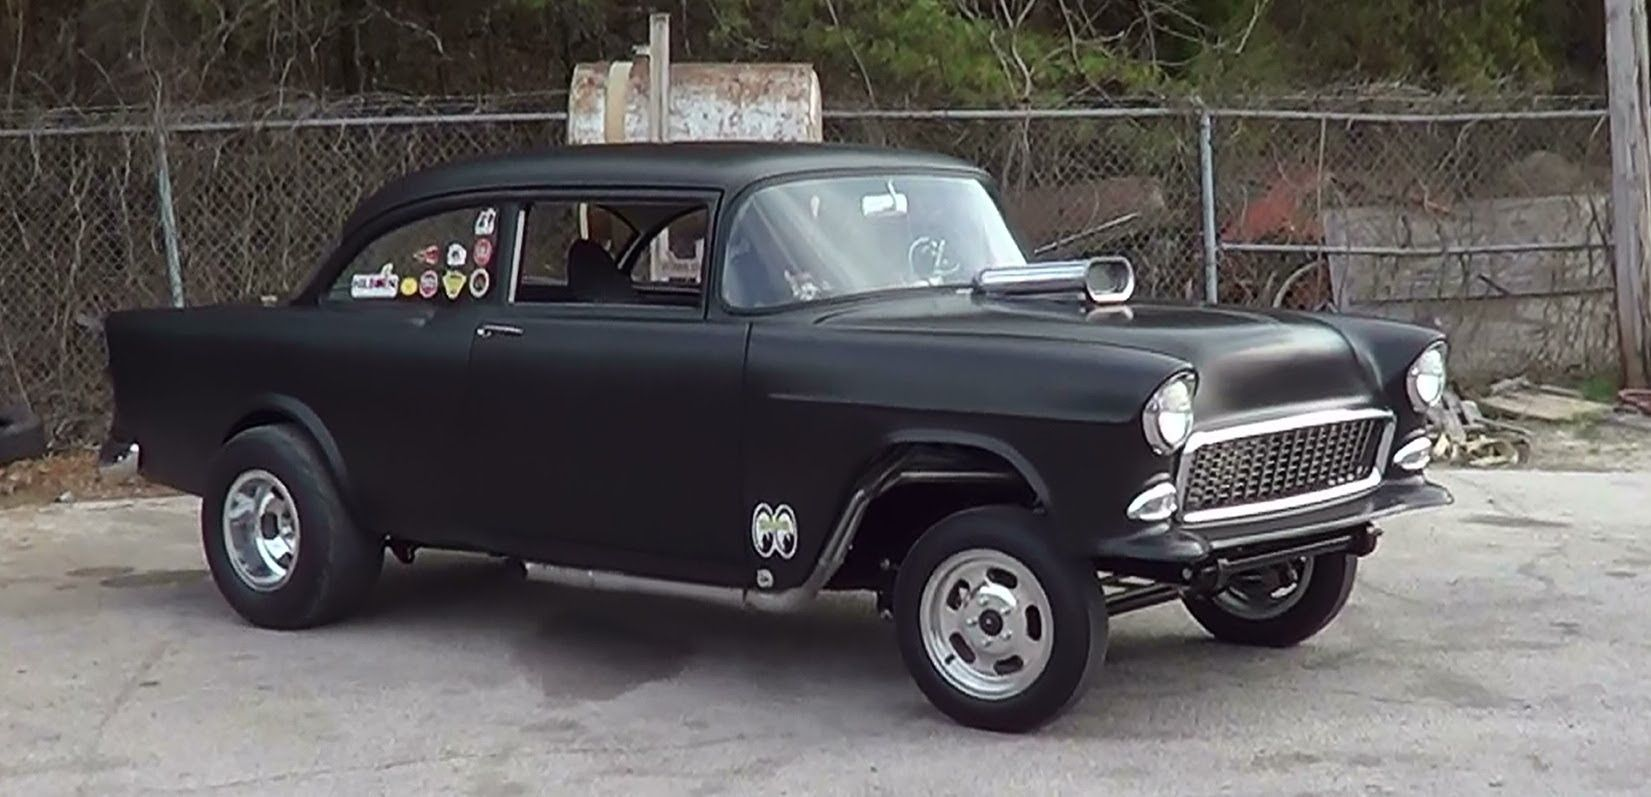 1955 chevrolet pro street truck youtube - 1955 Chevy Gasser Youtube